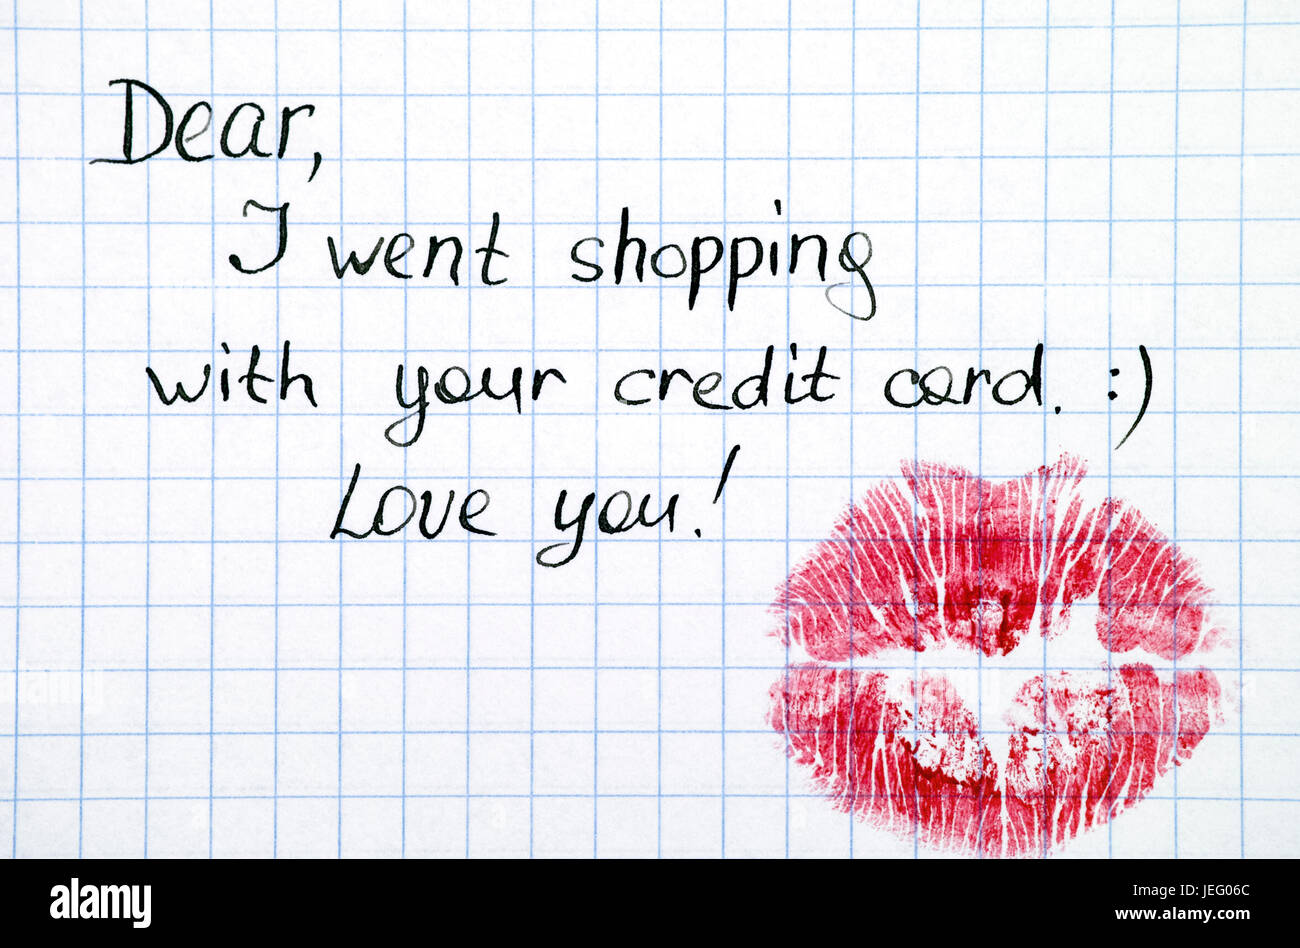 Note - Dear, I went shopping with  your credit card. Love you! with kiss. - Stock Image